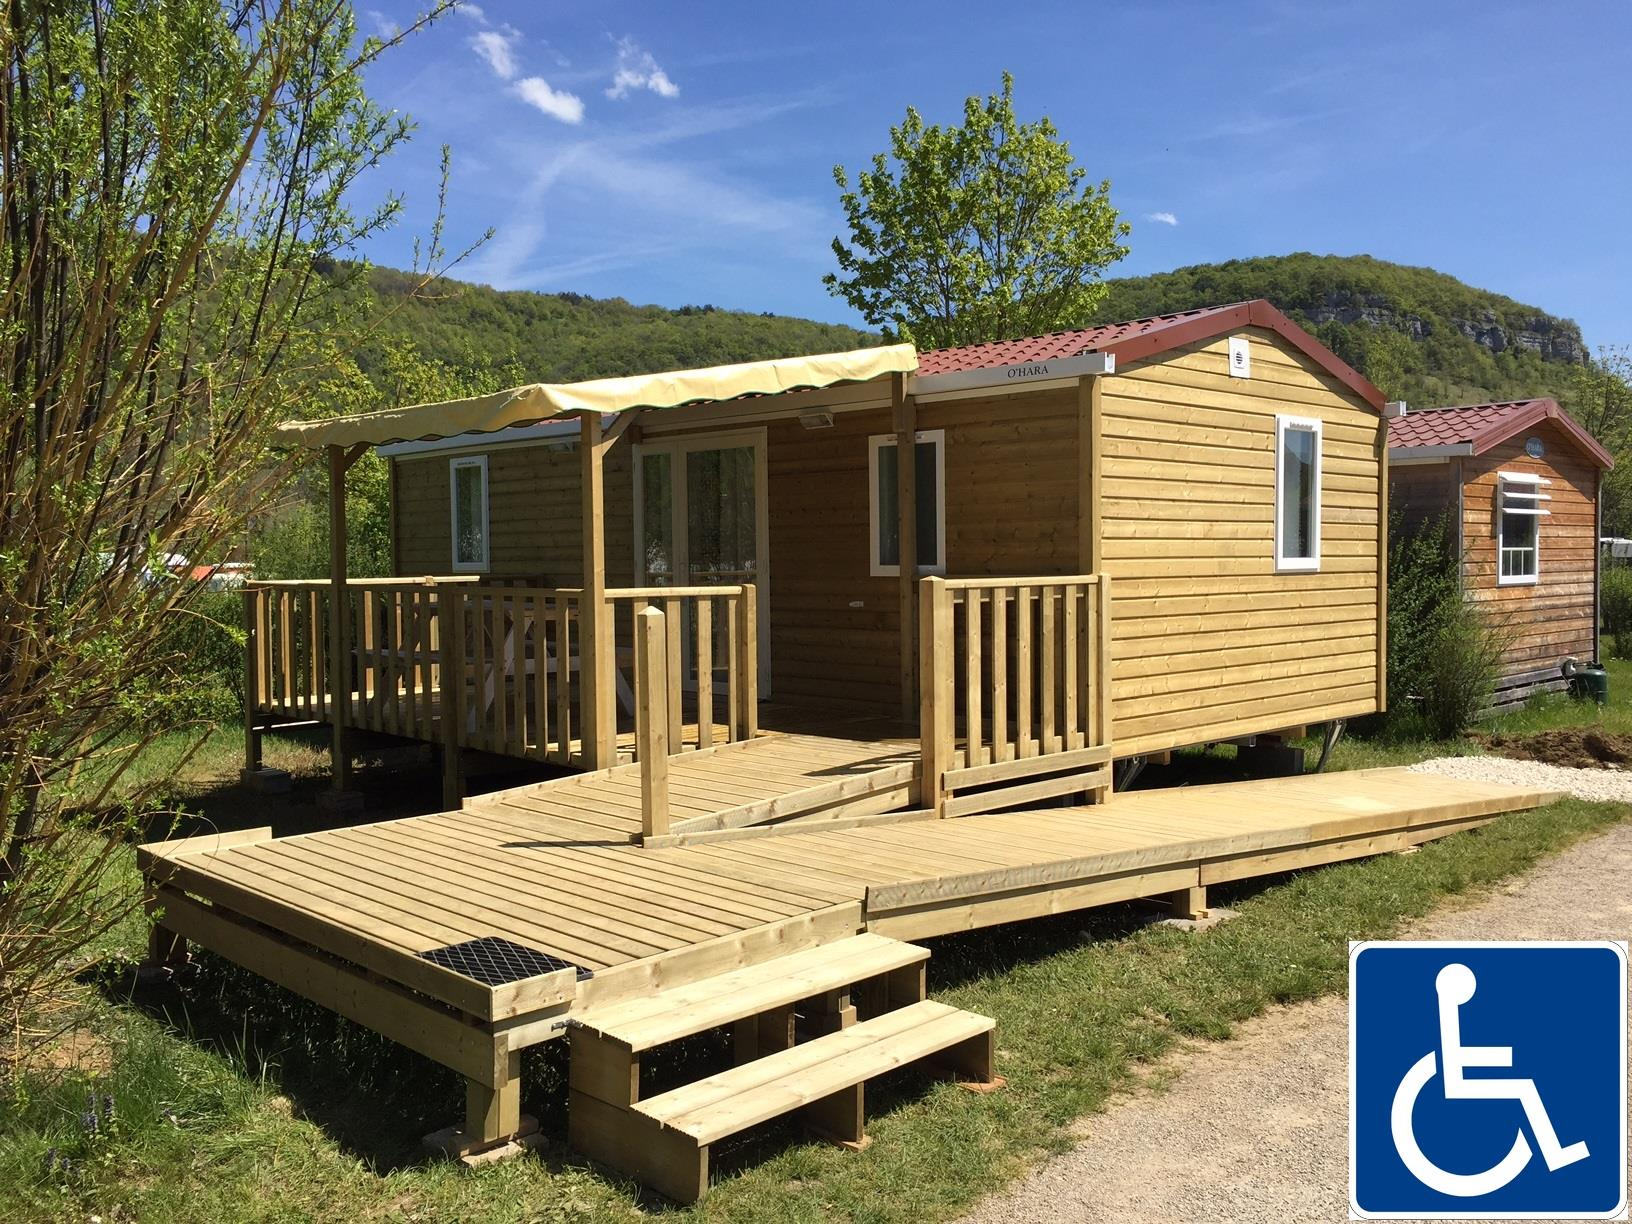 Location - Cottage Caborde Pmr - 32M² - 2 Chambres, Ultra-Spacieux Entièrement Accessible Aux Fauteuils - Camping La Roche d'Ully